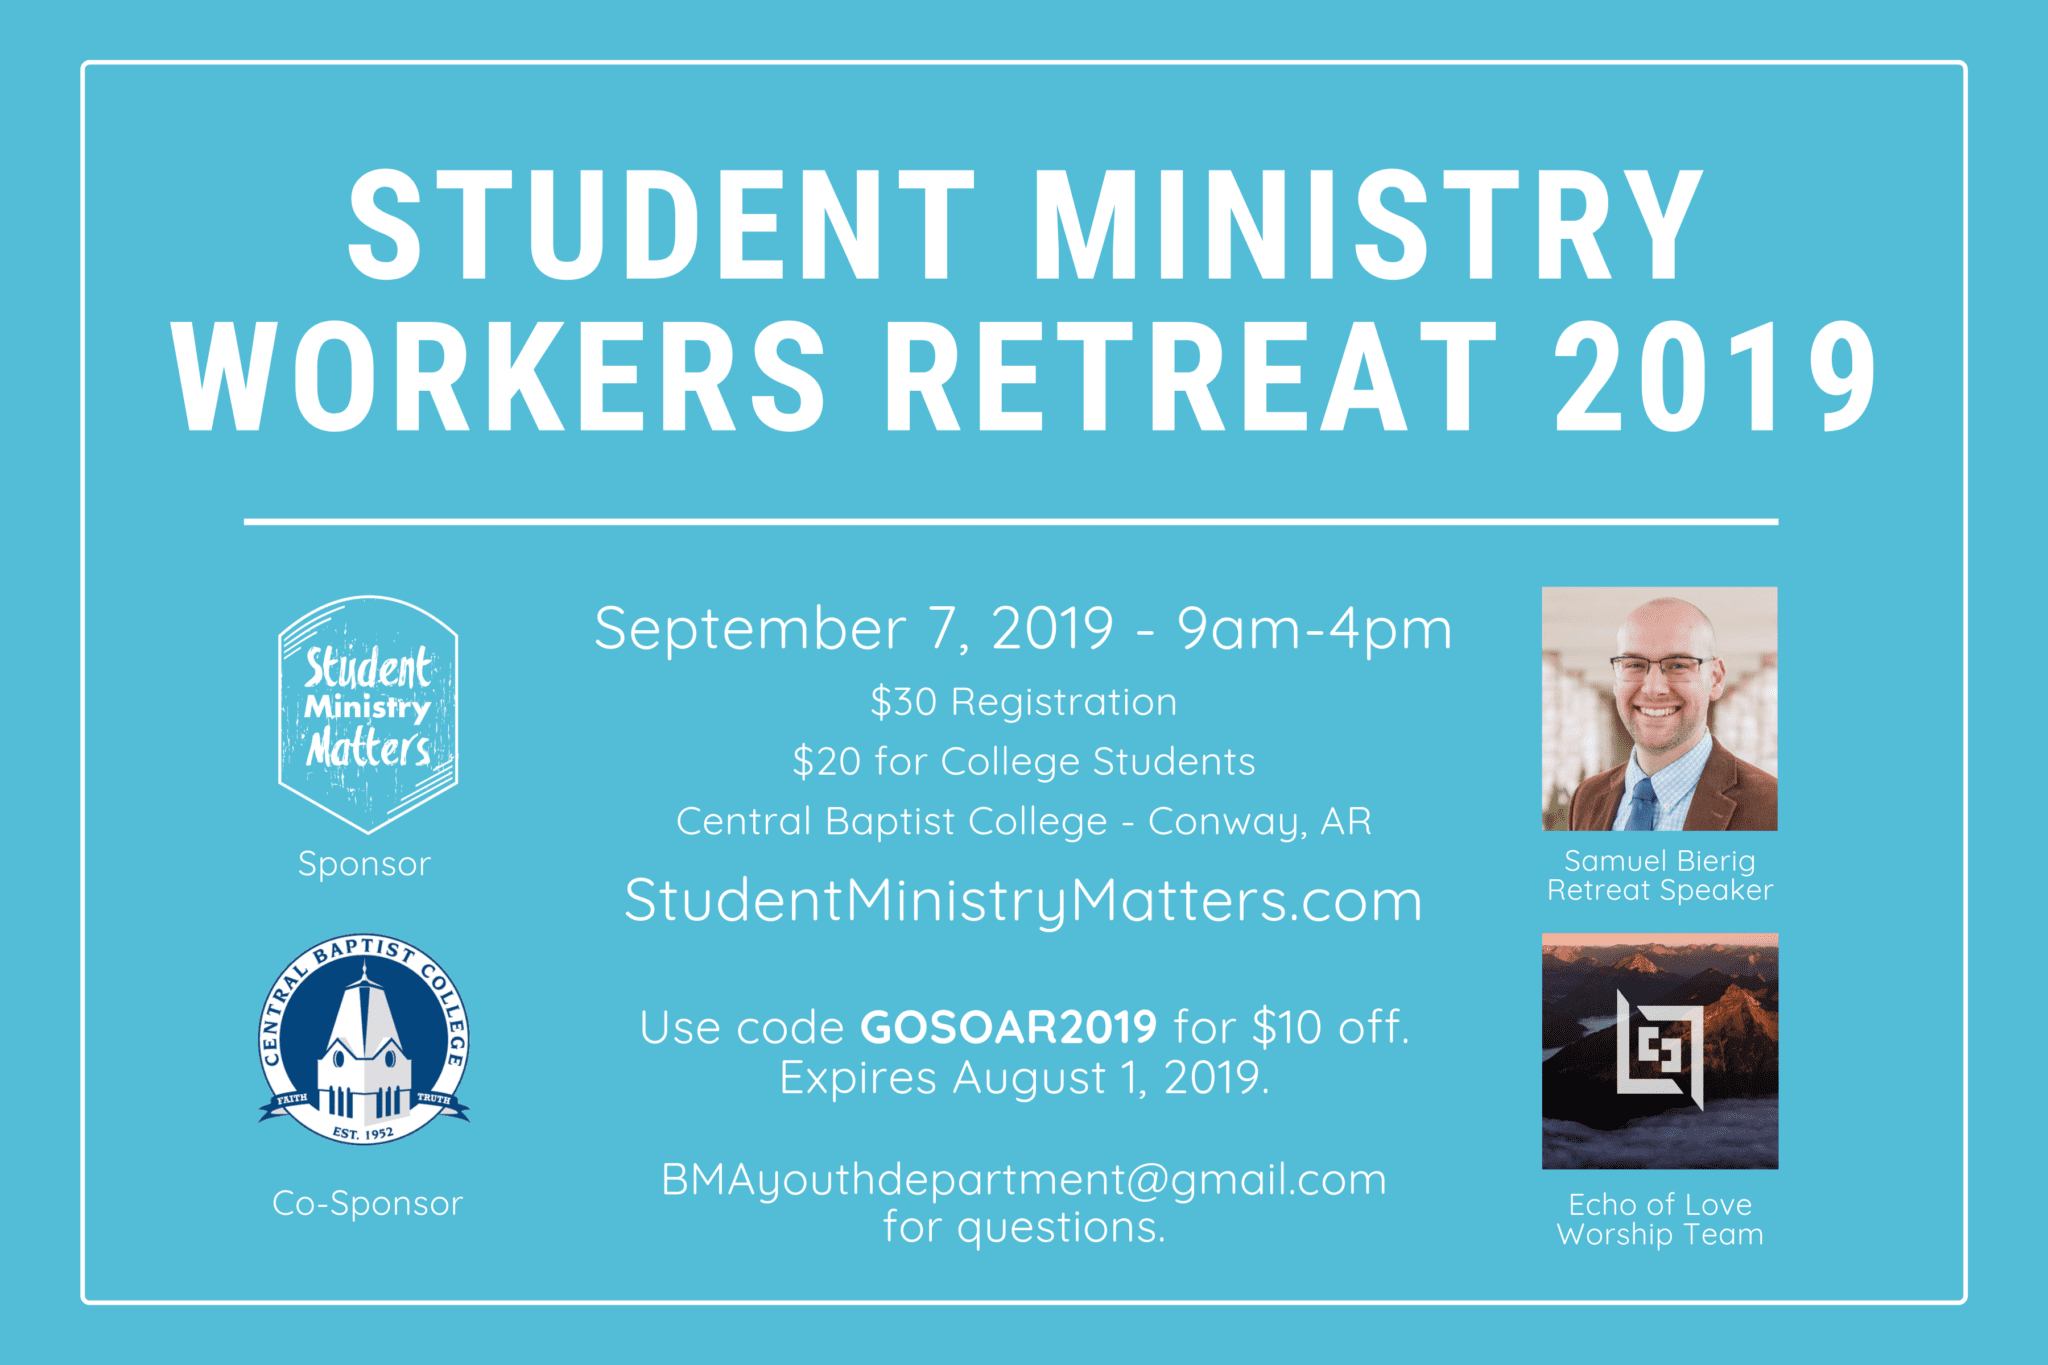 Student Ministry Workers' Retreat